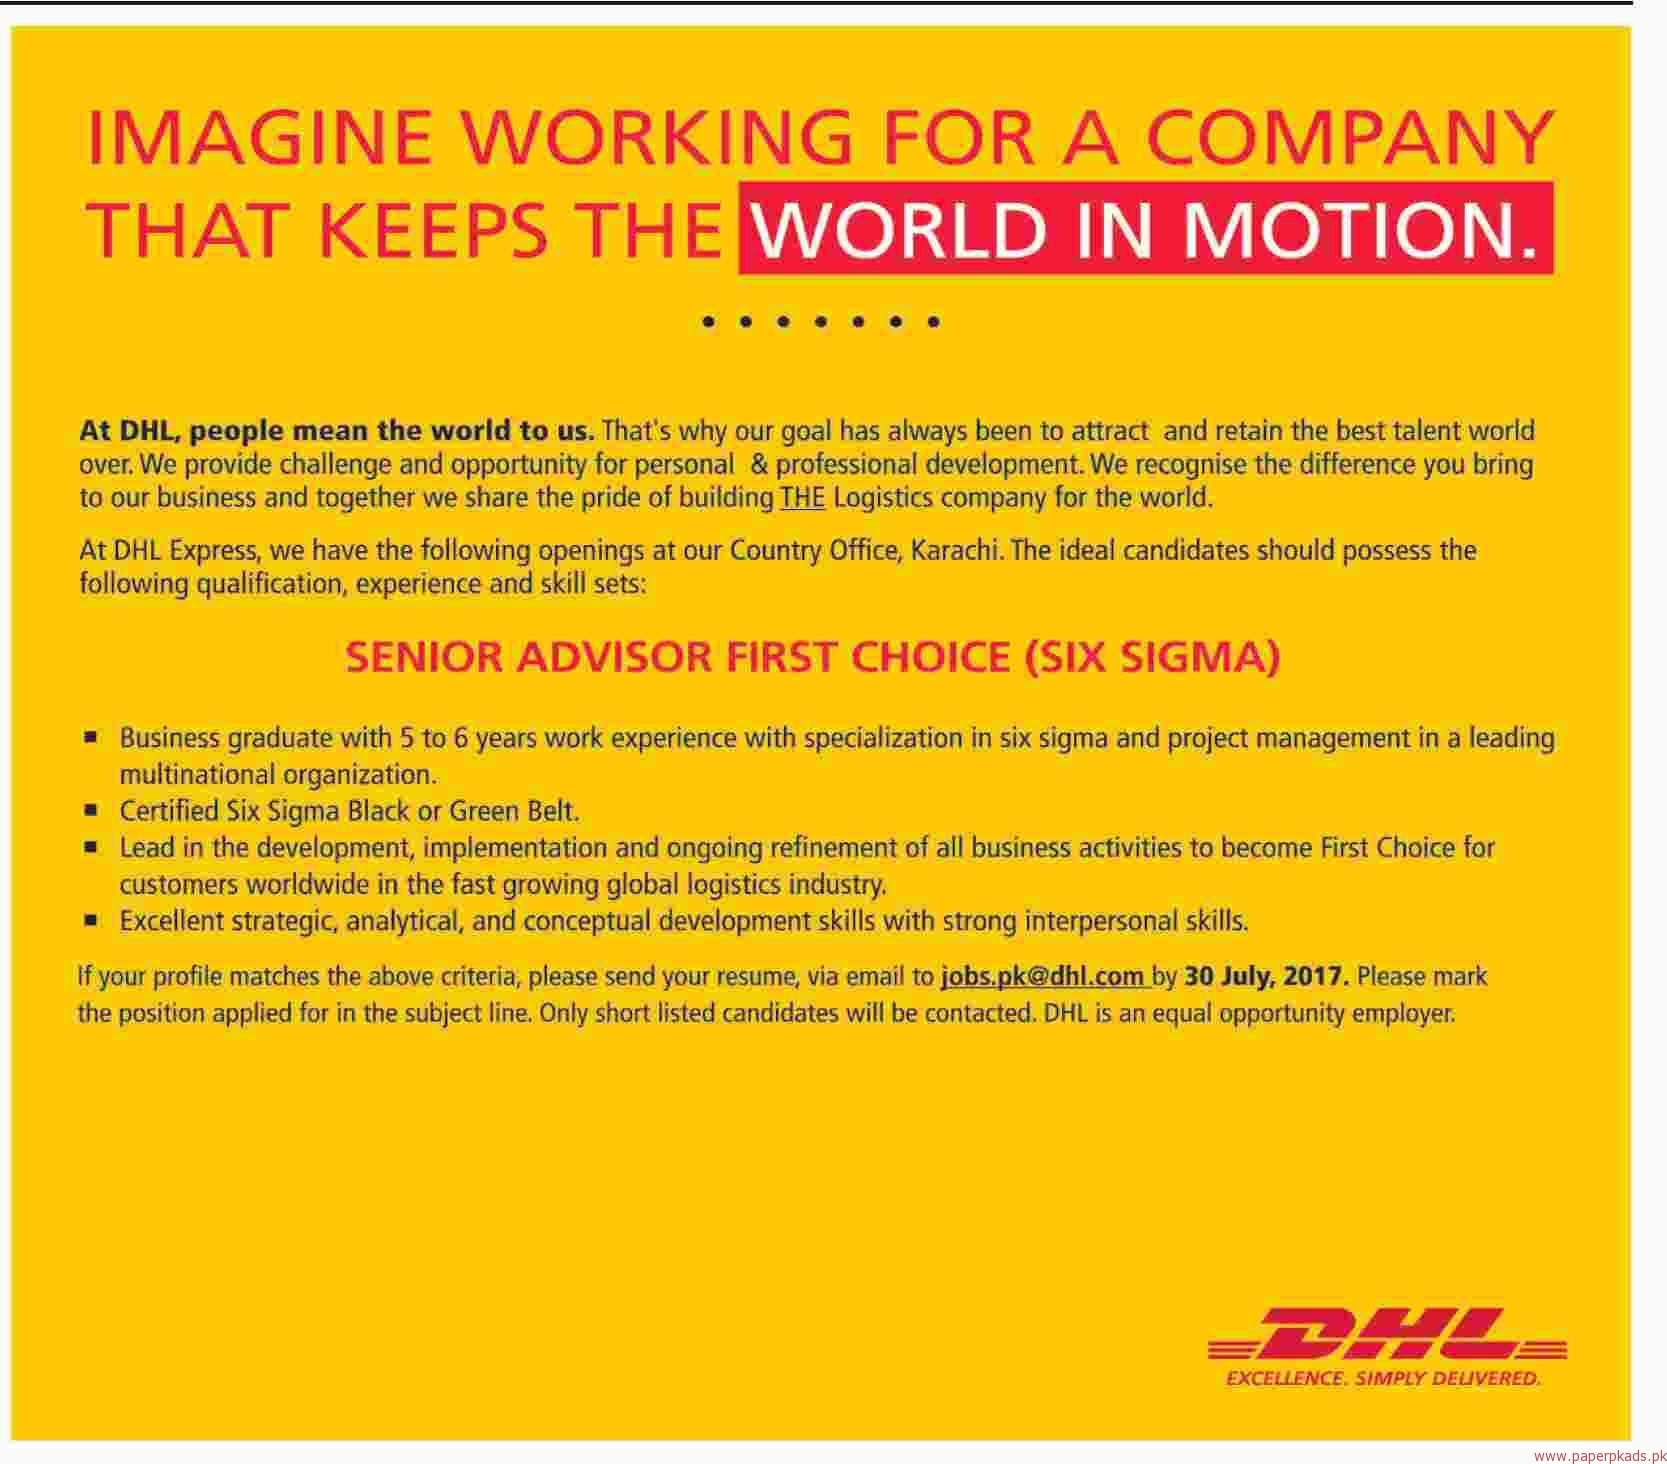 Jobs in DHL